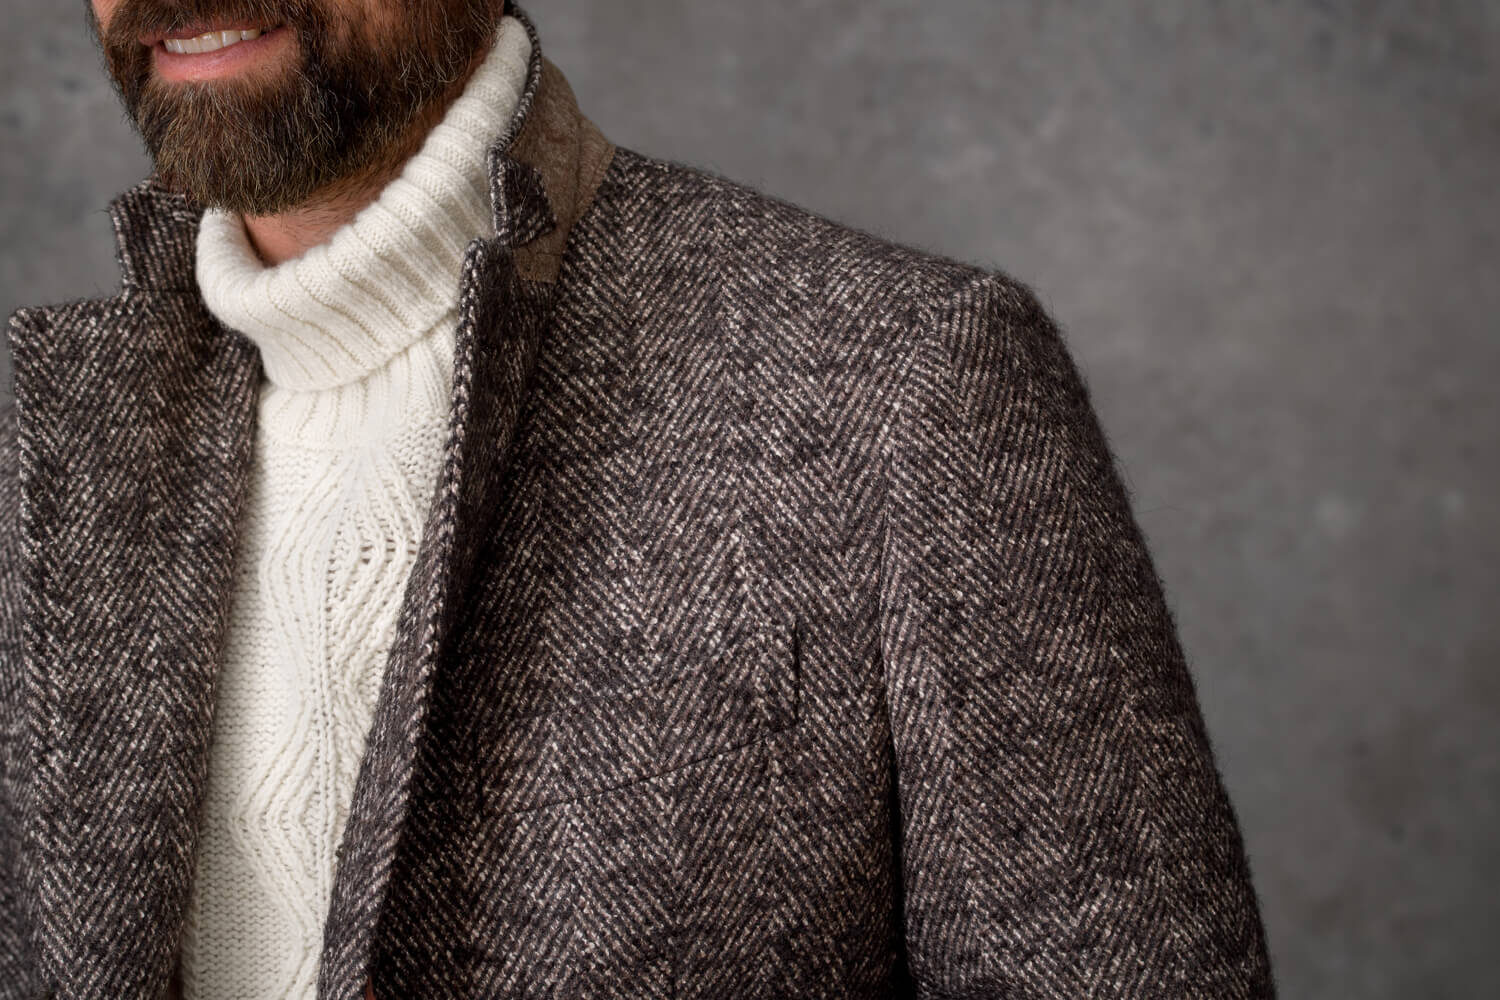 Look: The Chunky Knit Zoomed